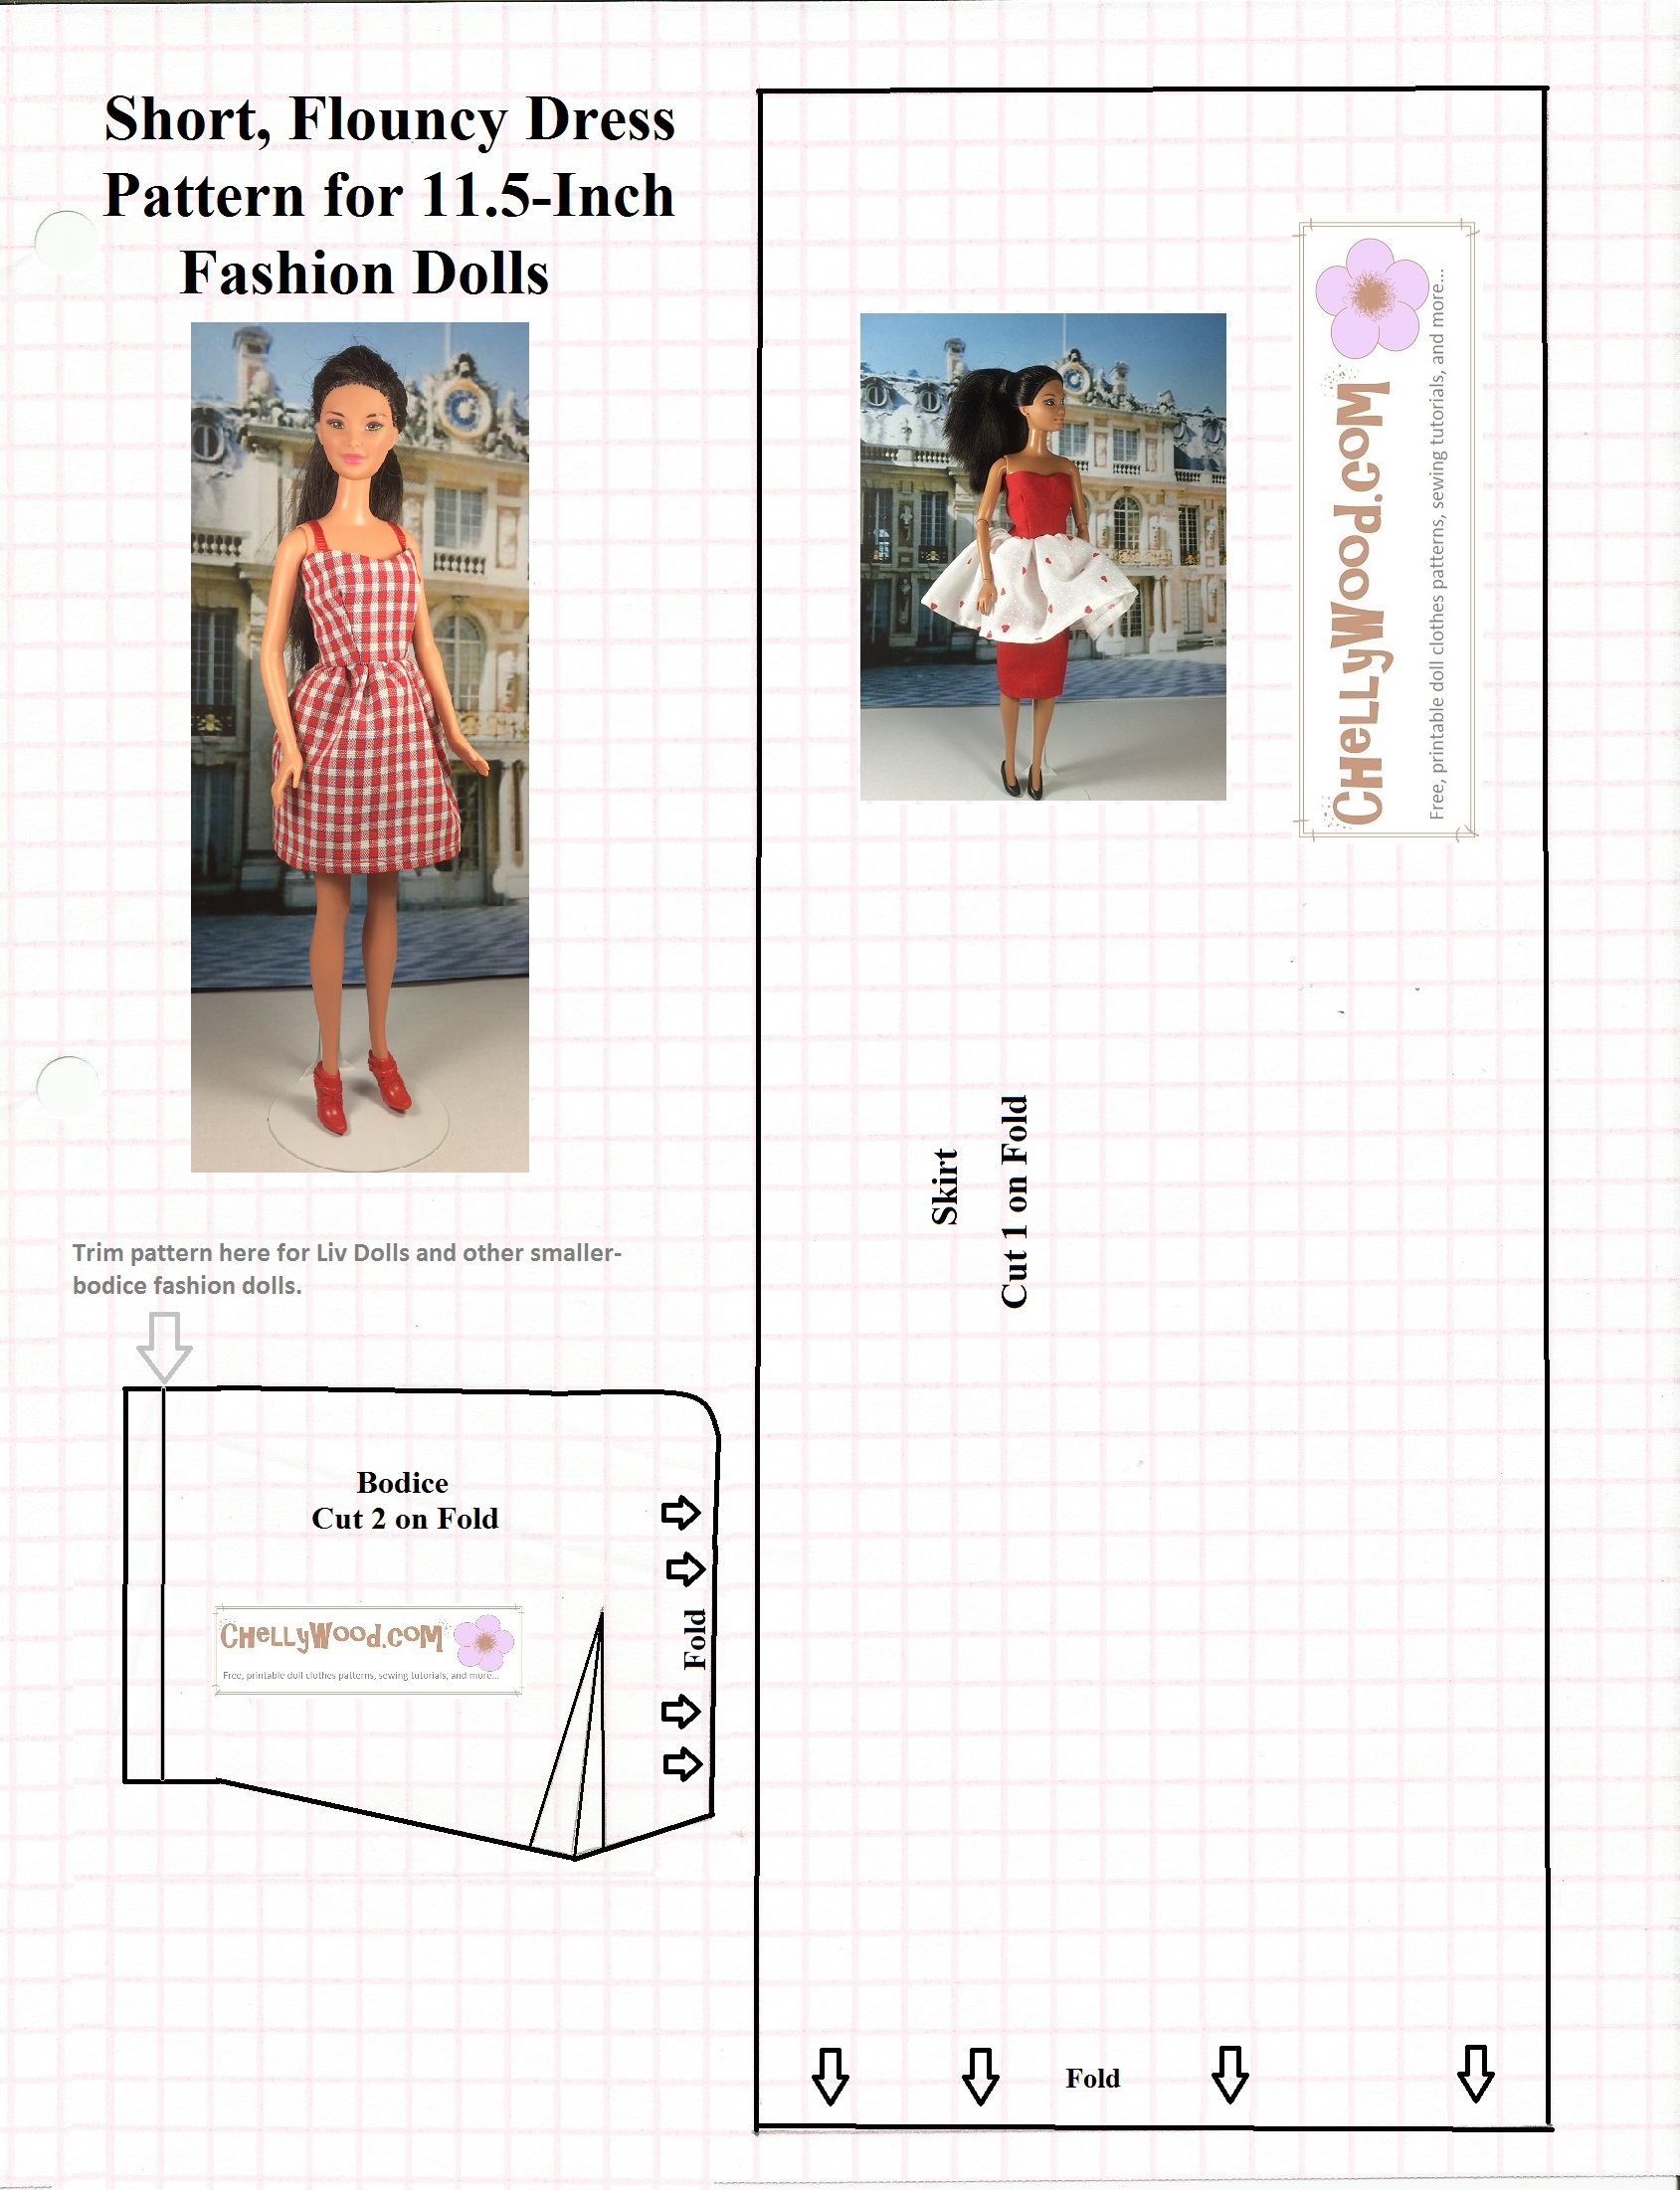 Barbie Patterns – Chelly Wood